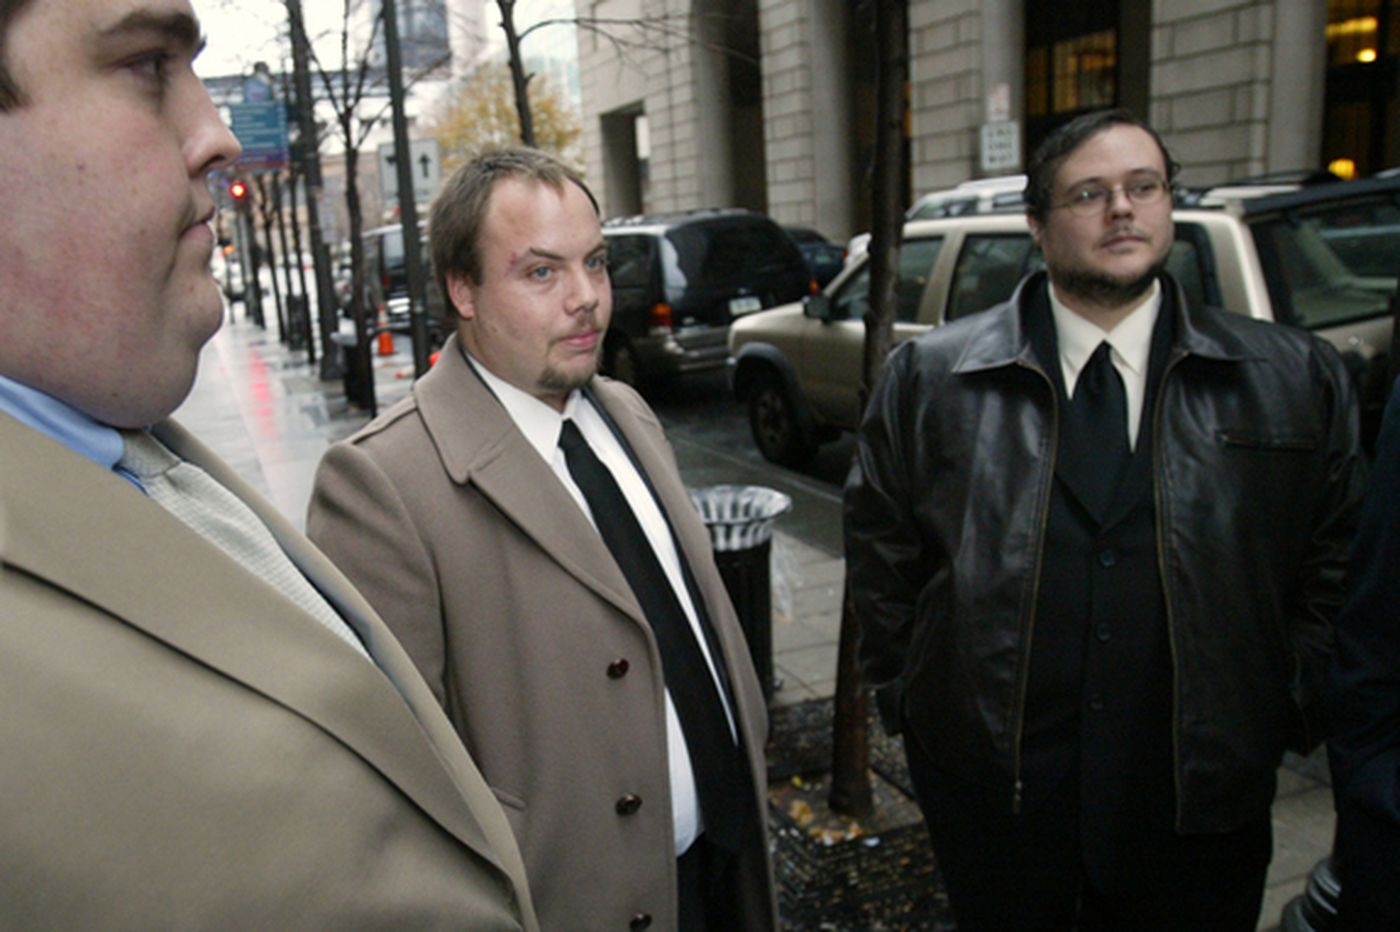 Lawyers: Activists set up by undercover cops at KKK rally